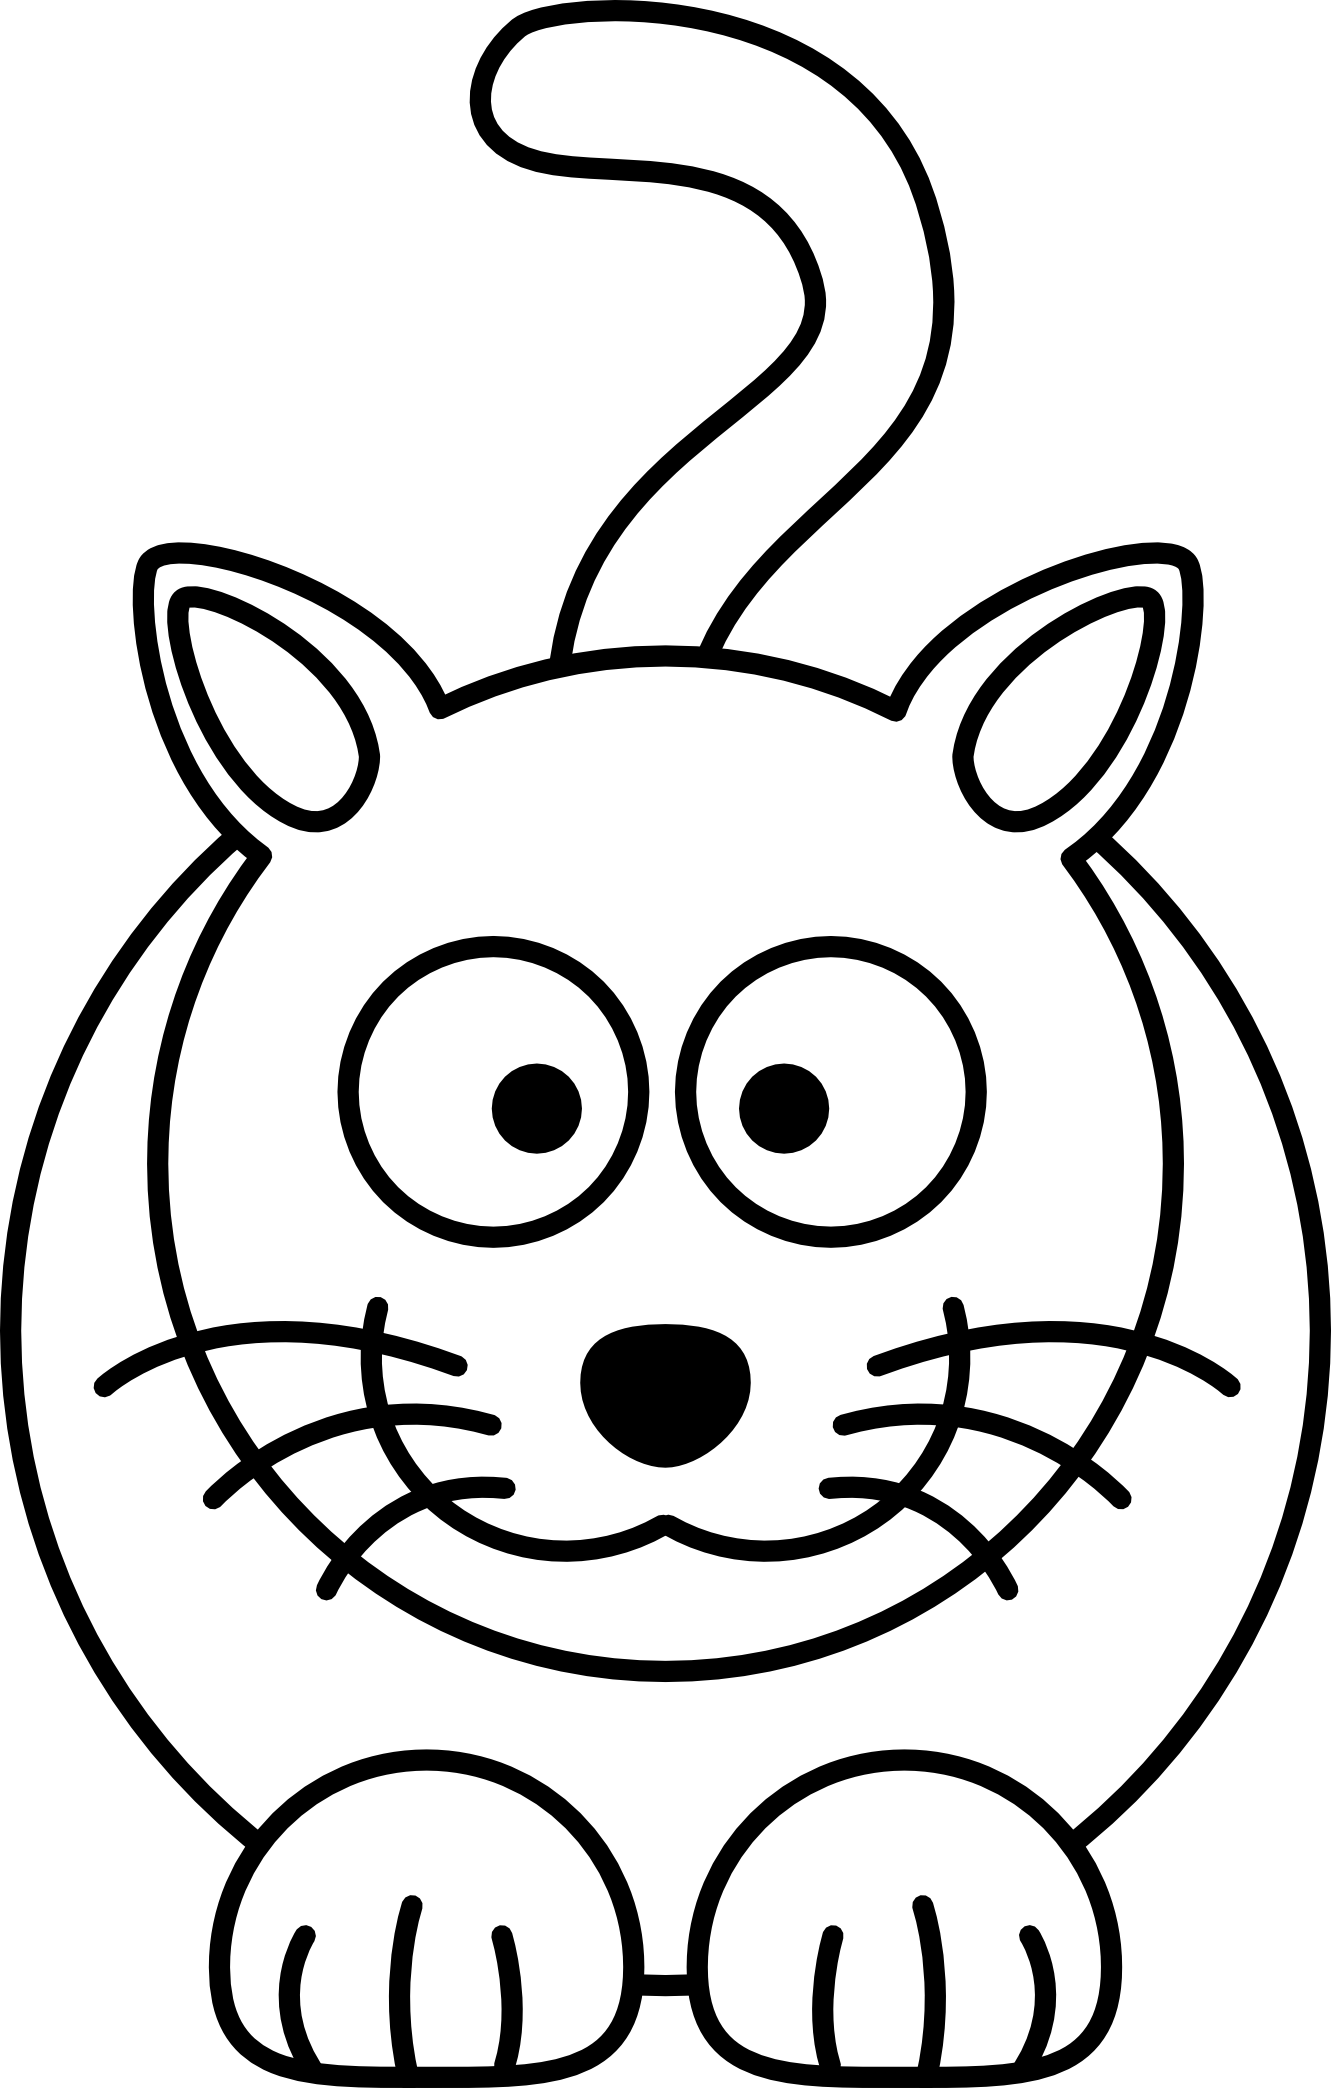 Nest clipart simple. Line drawing of cat